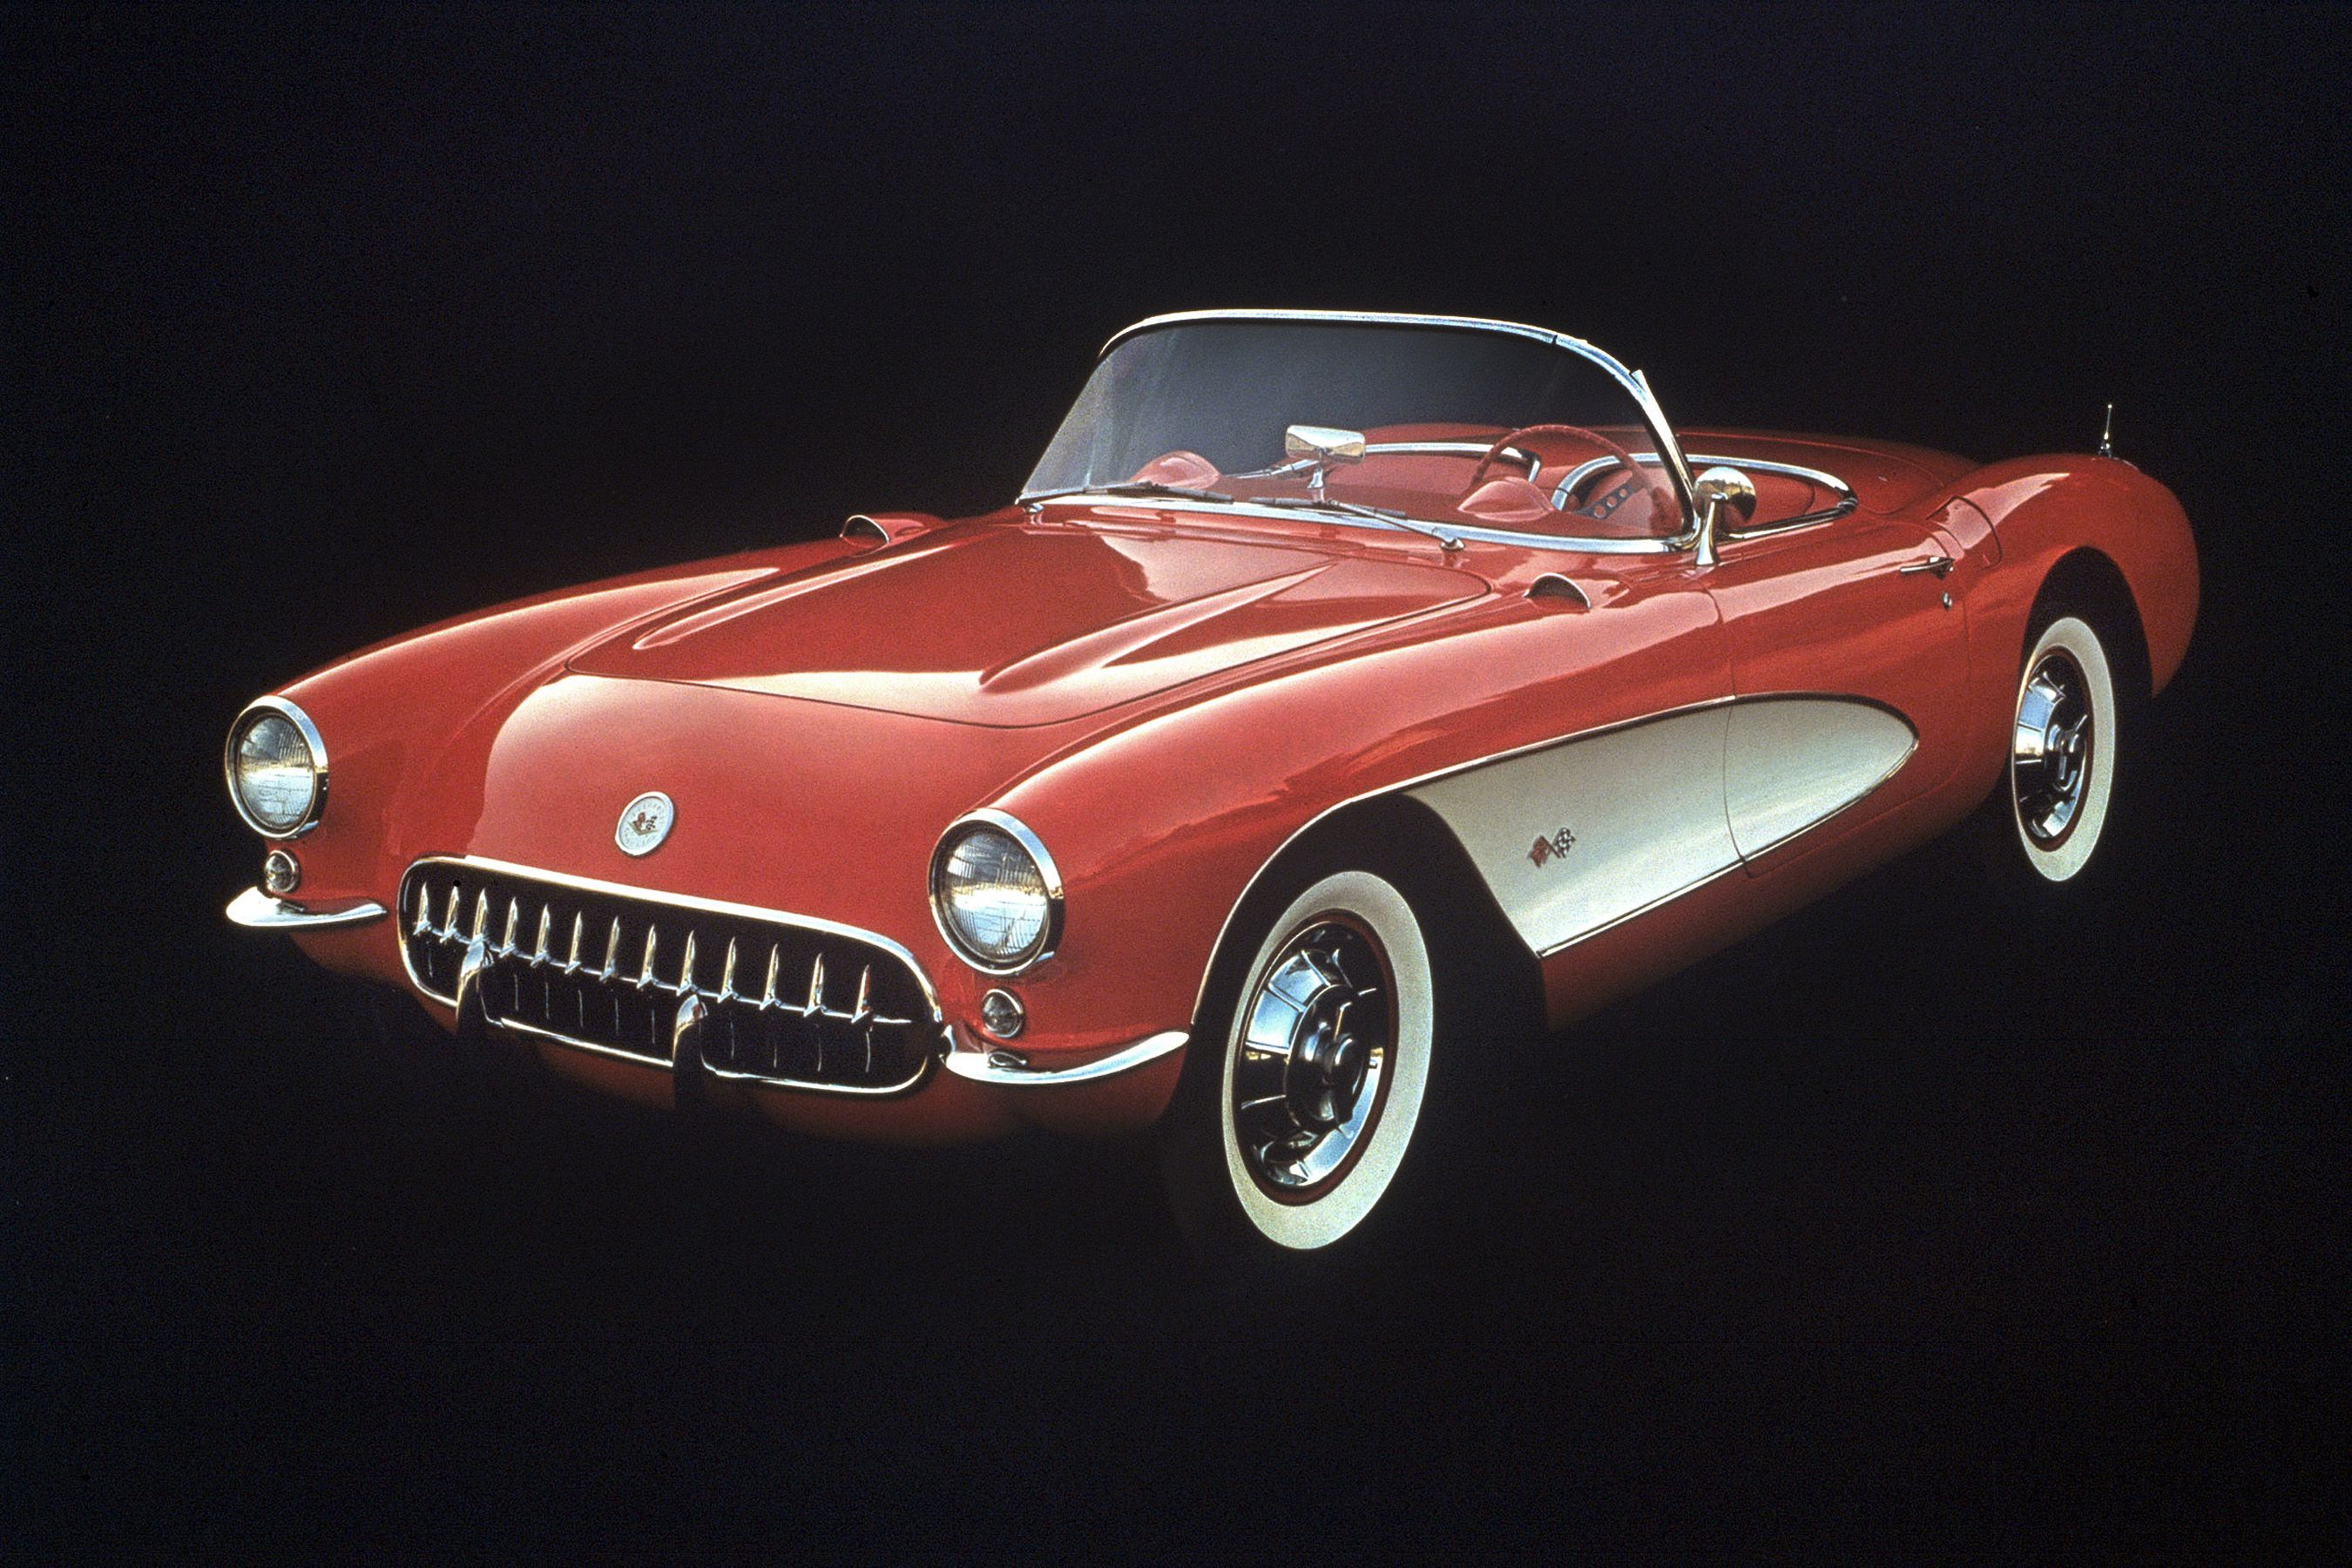 Chevrolet Corvette Complete History – From C1 to C8